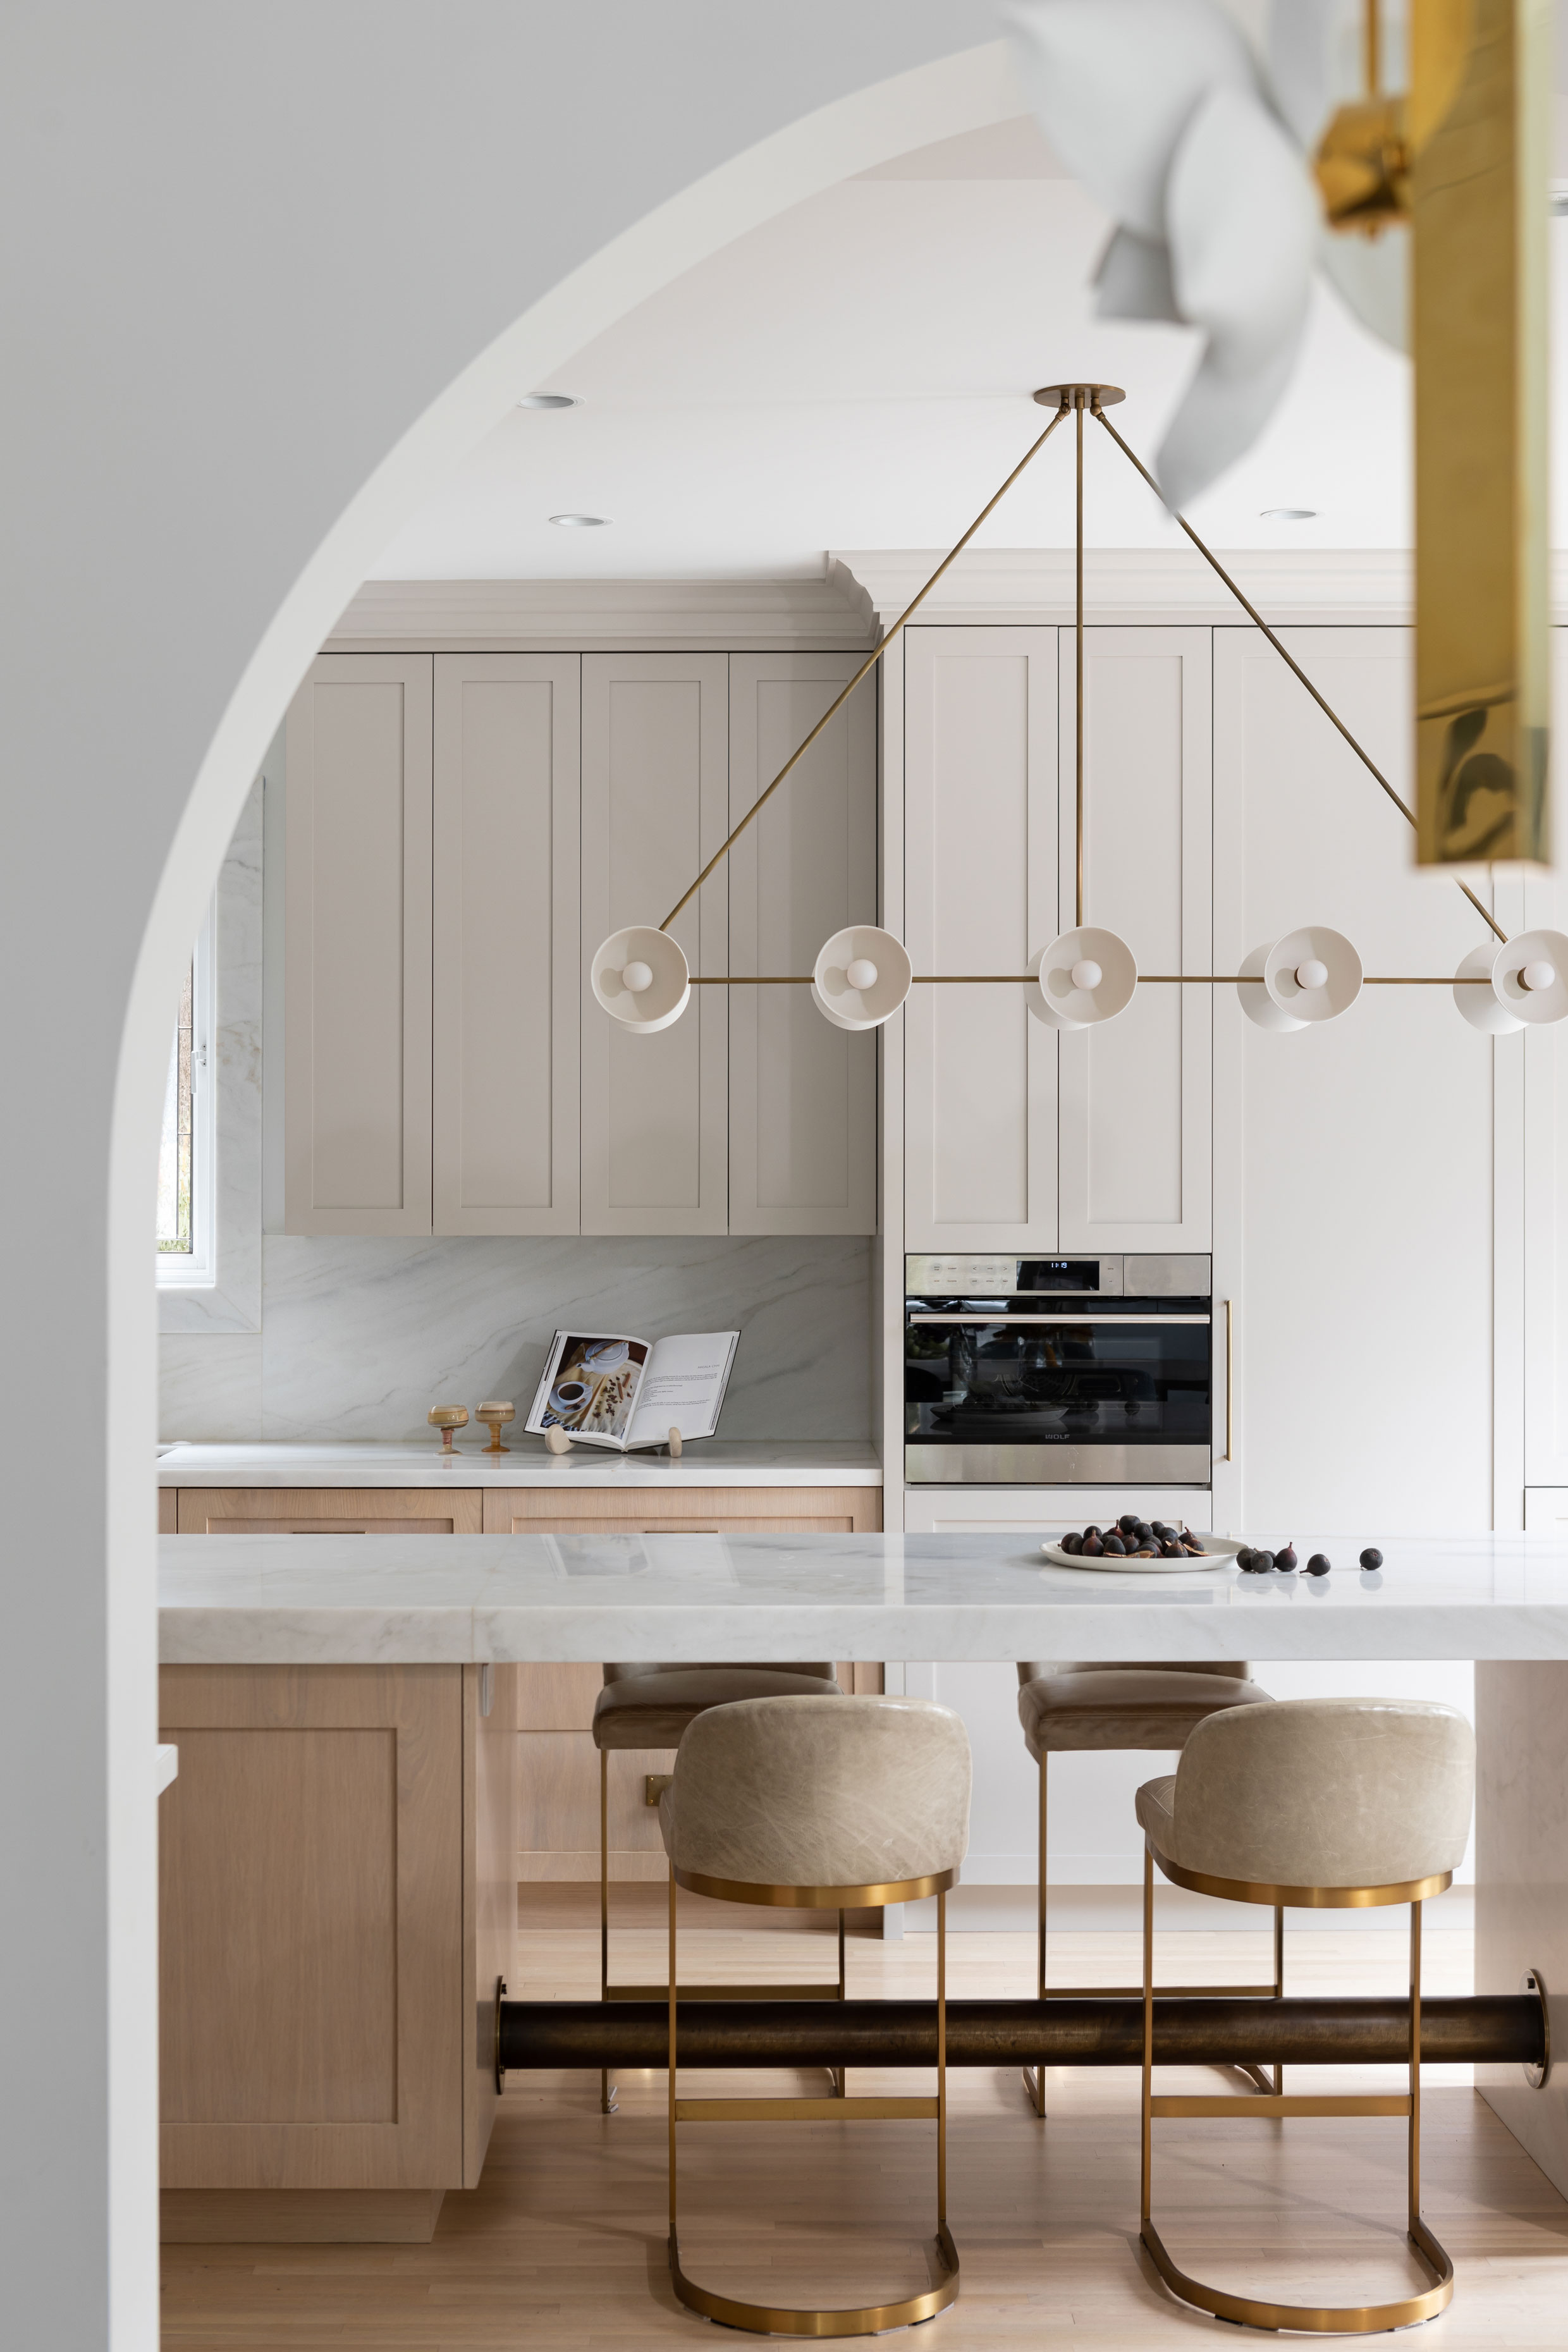 How to make a small kitchen look bigger With expert advice ...